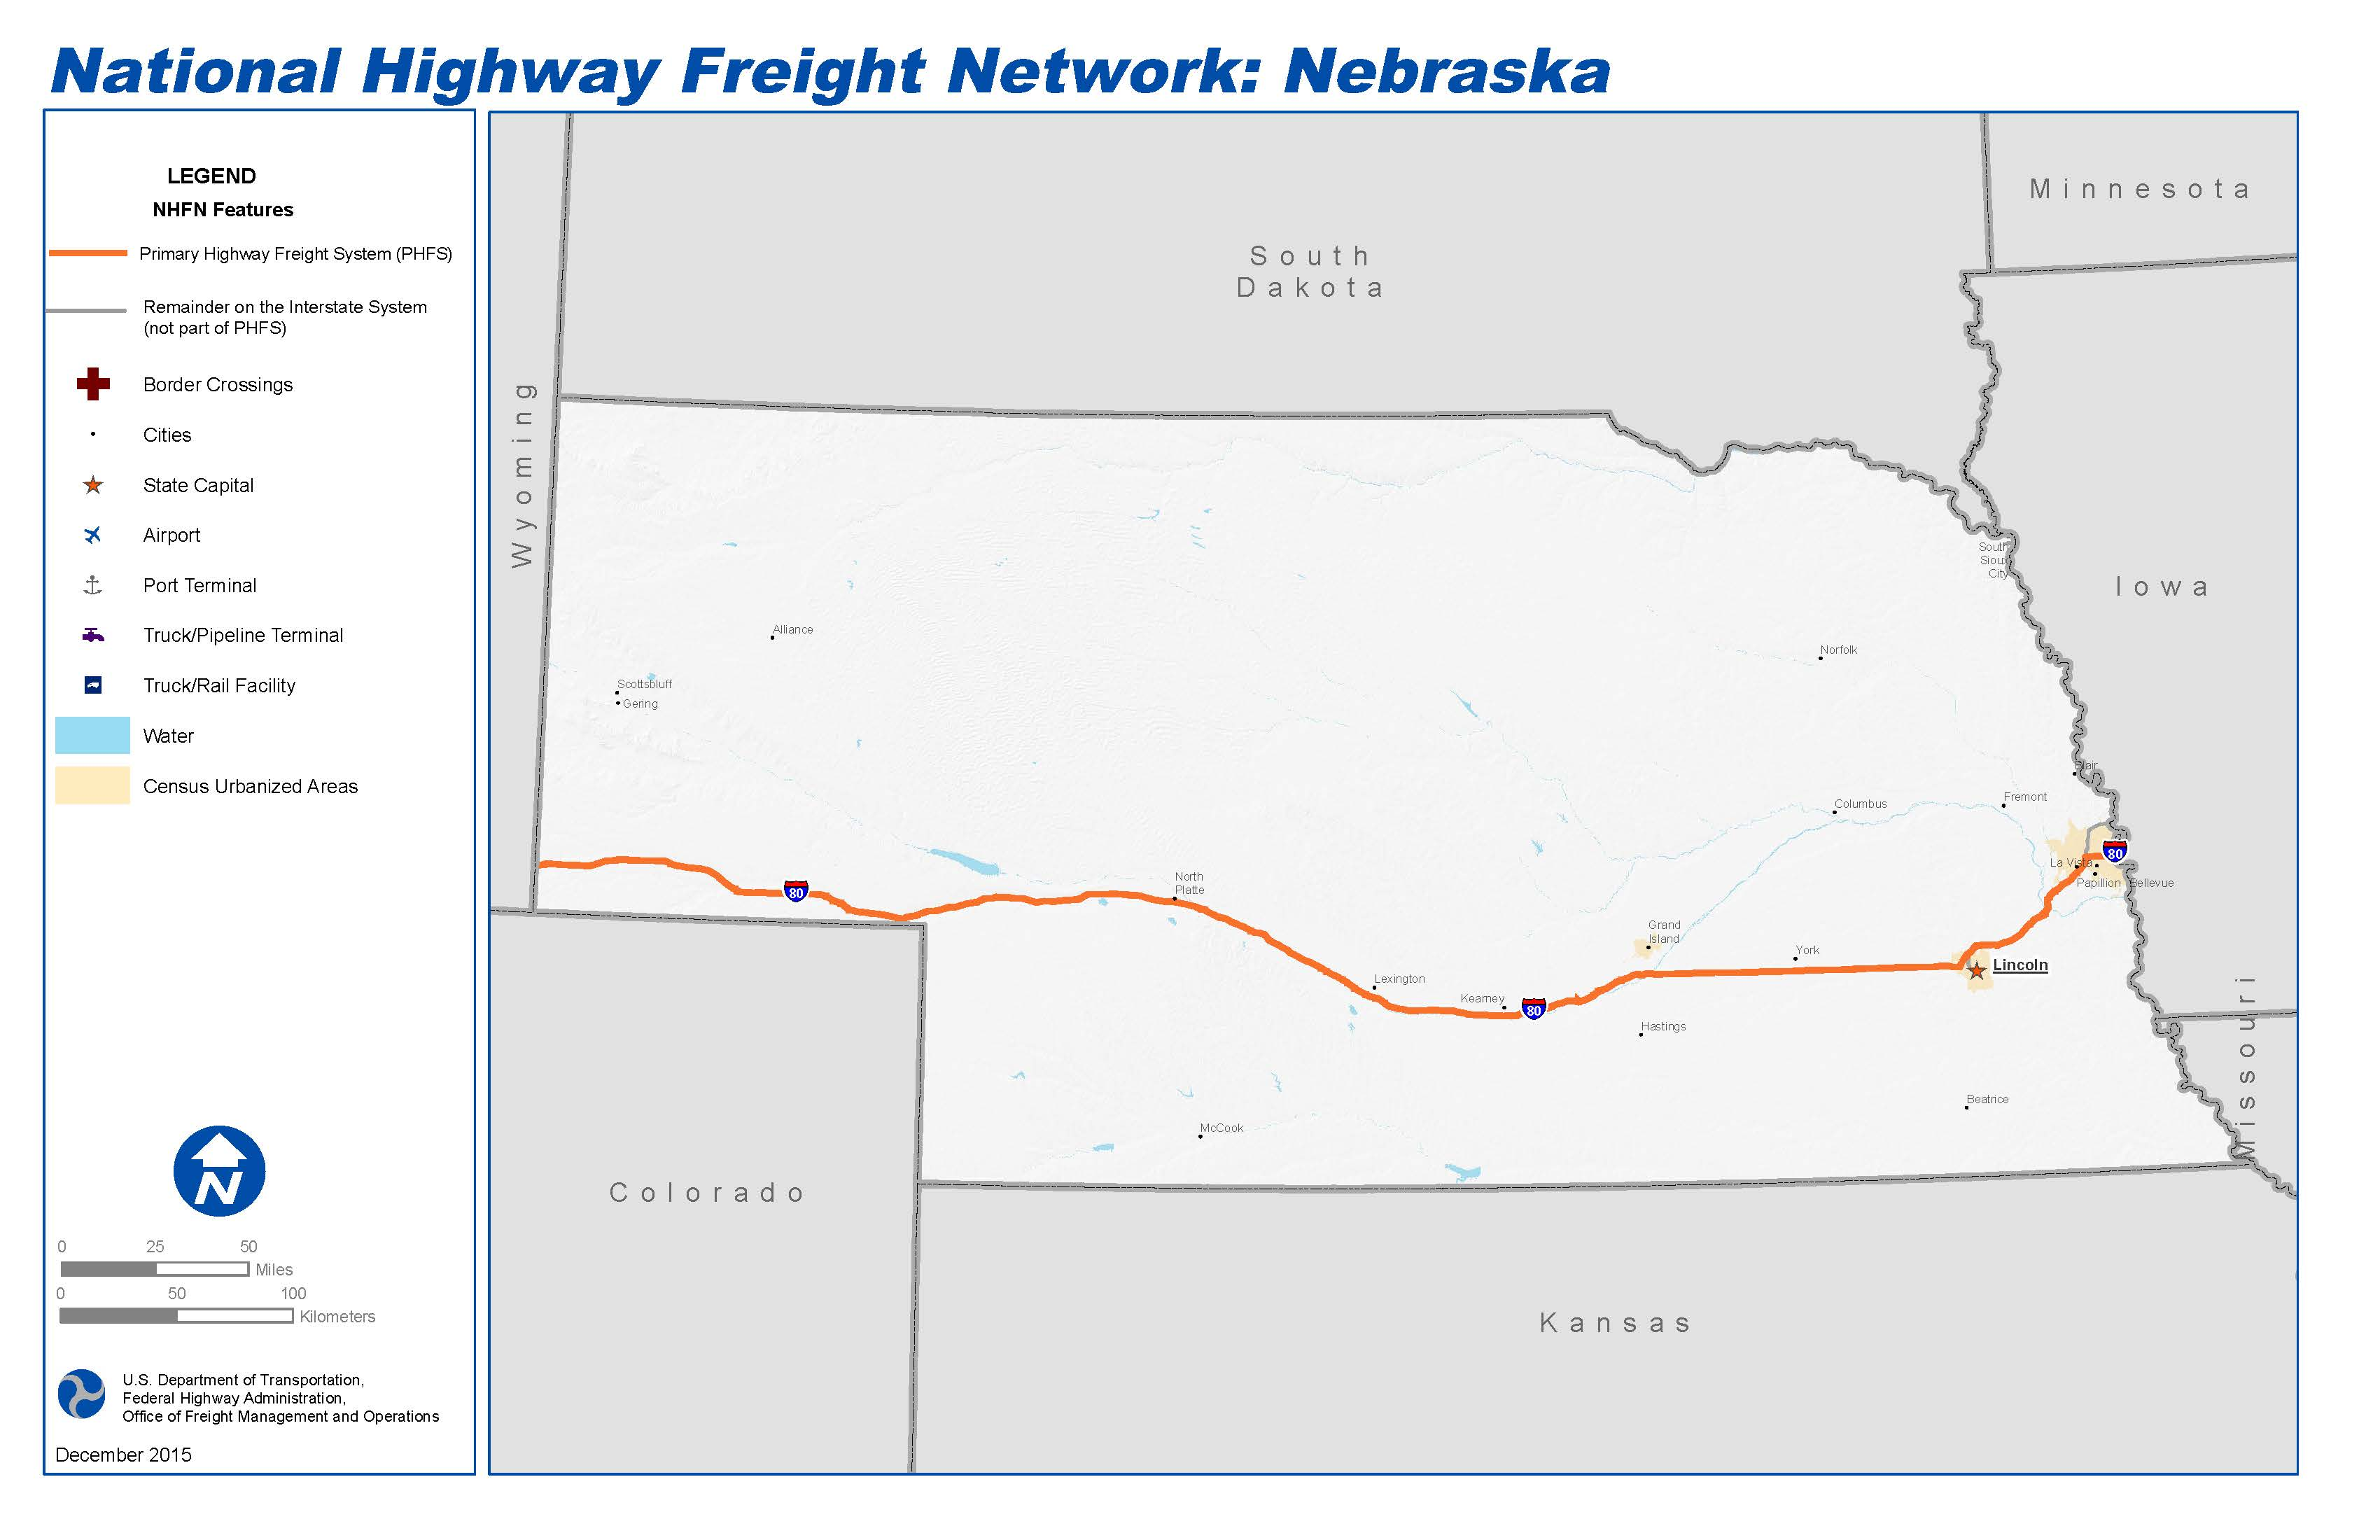 National Highway Freight Network Map And Tables For Nebraska - State map of nebraska